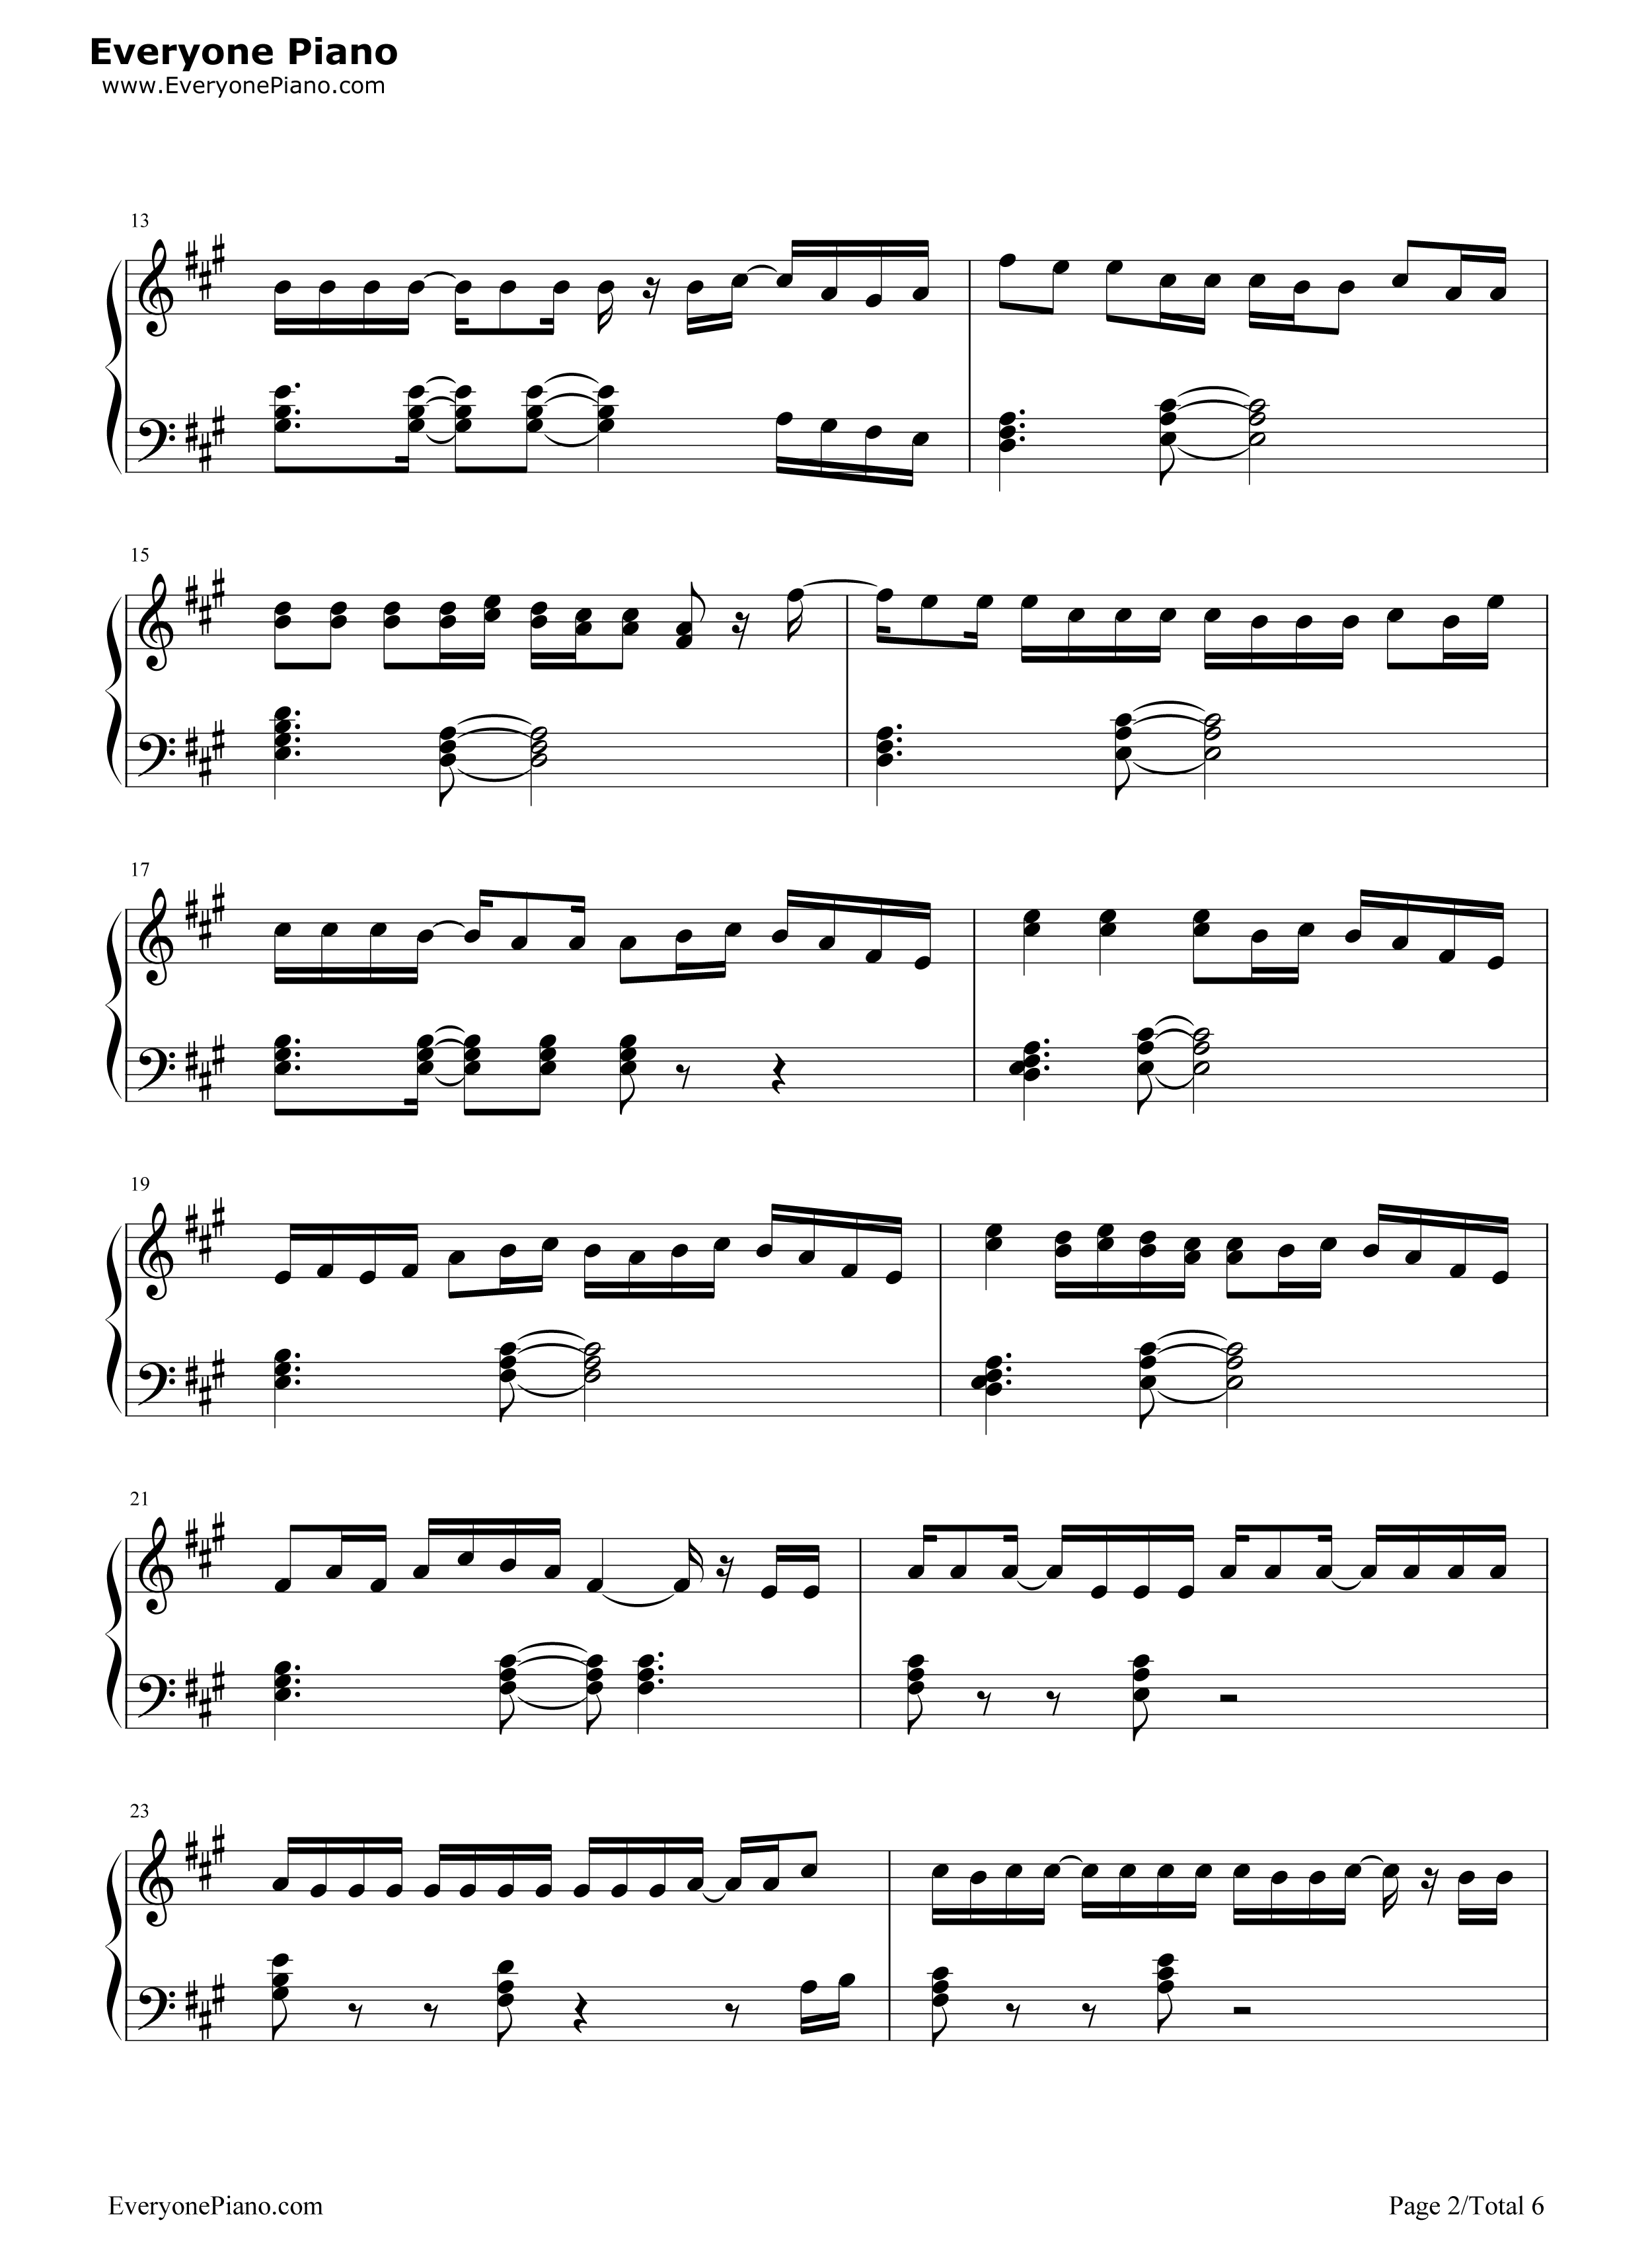 Galway girl ed sheeran stave preview 2 free piano sheet music listen now print sheet galway girl ed sheeran stave preview 2 hexwebz Images